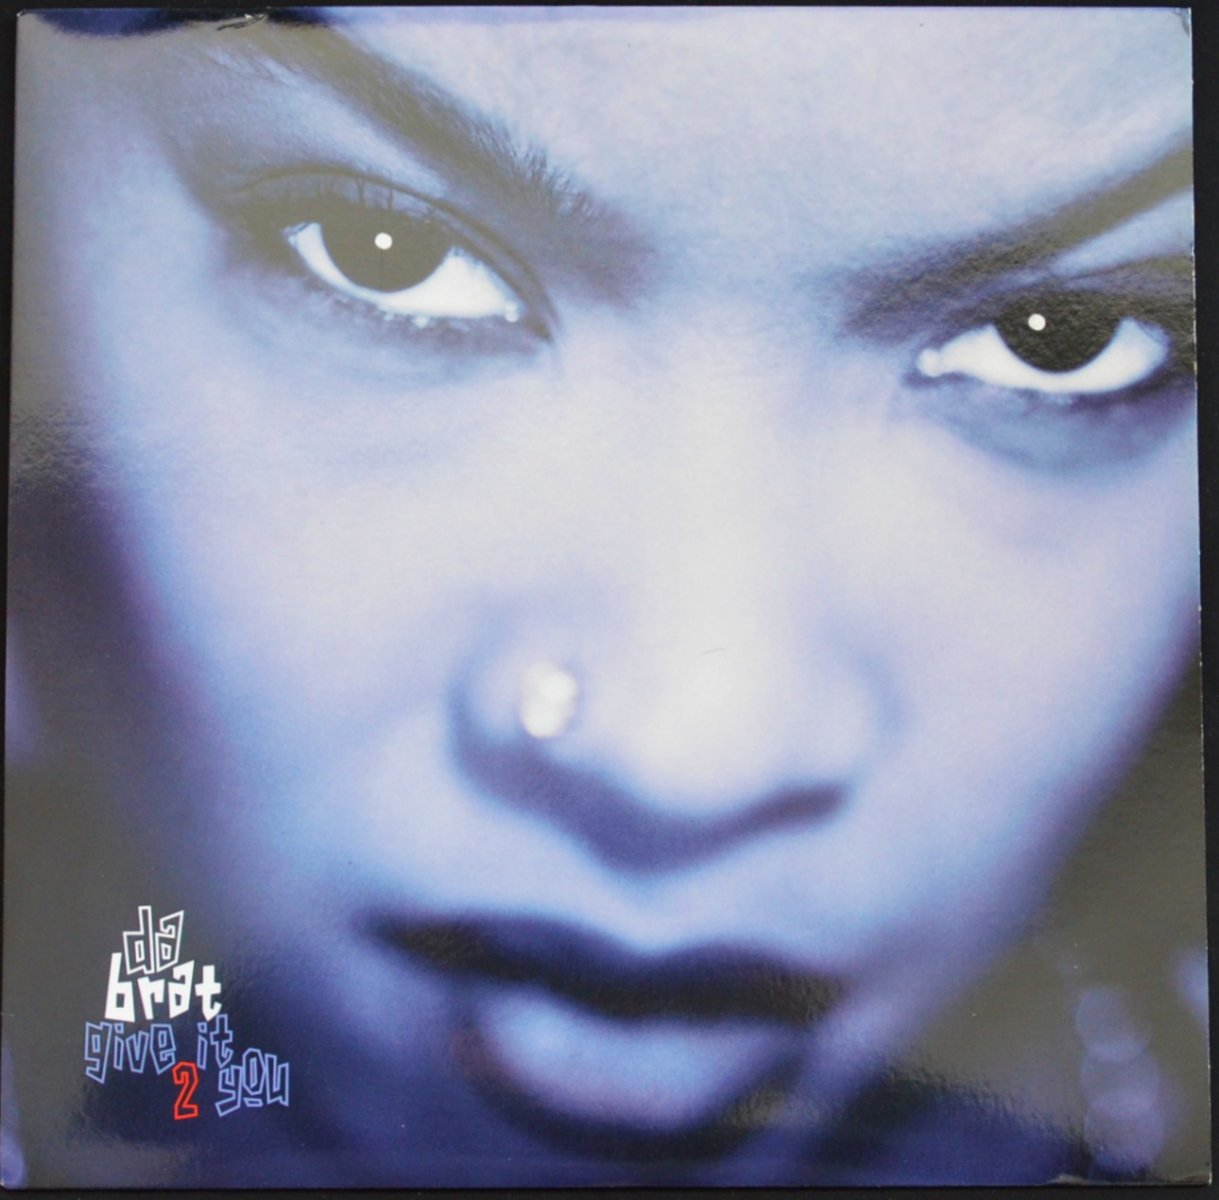 DA BRAT ‎/ GIVE IT 2 YOU (PROD BY JERMAINE DUPRI) (12